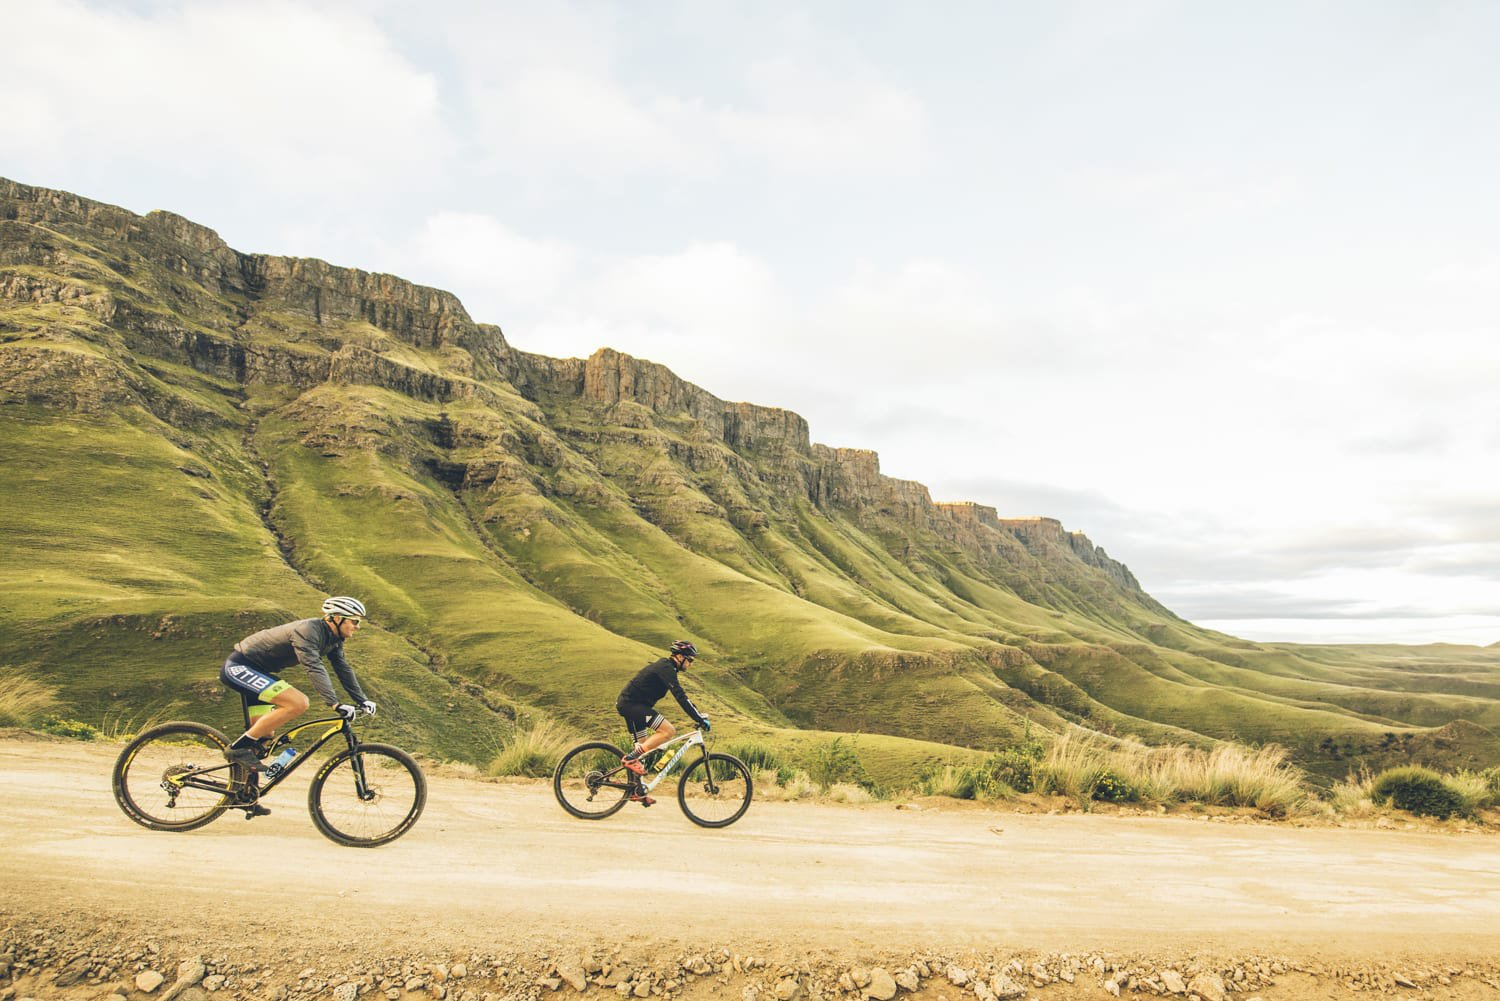 sani-pass-desmond-louw-bicycling-magazine-wowrides-0113